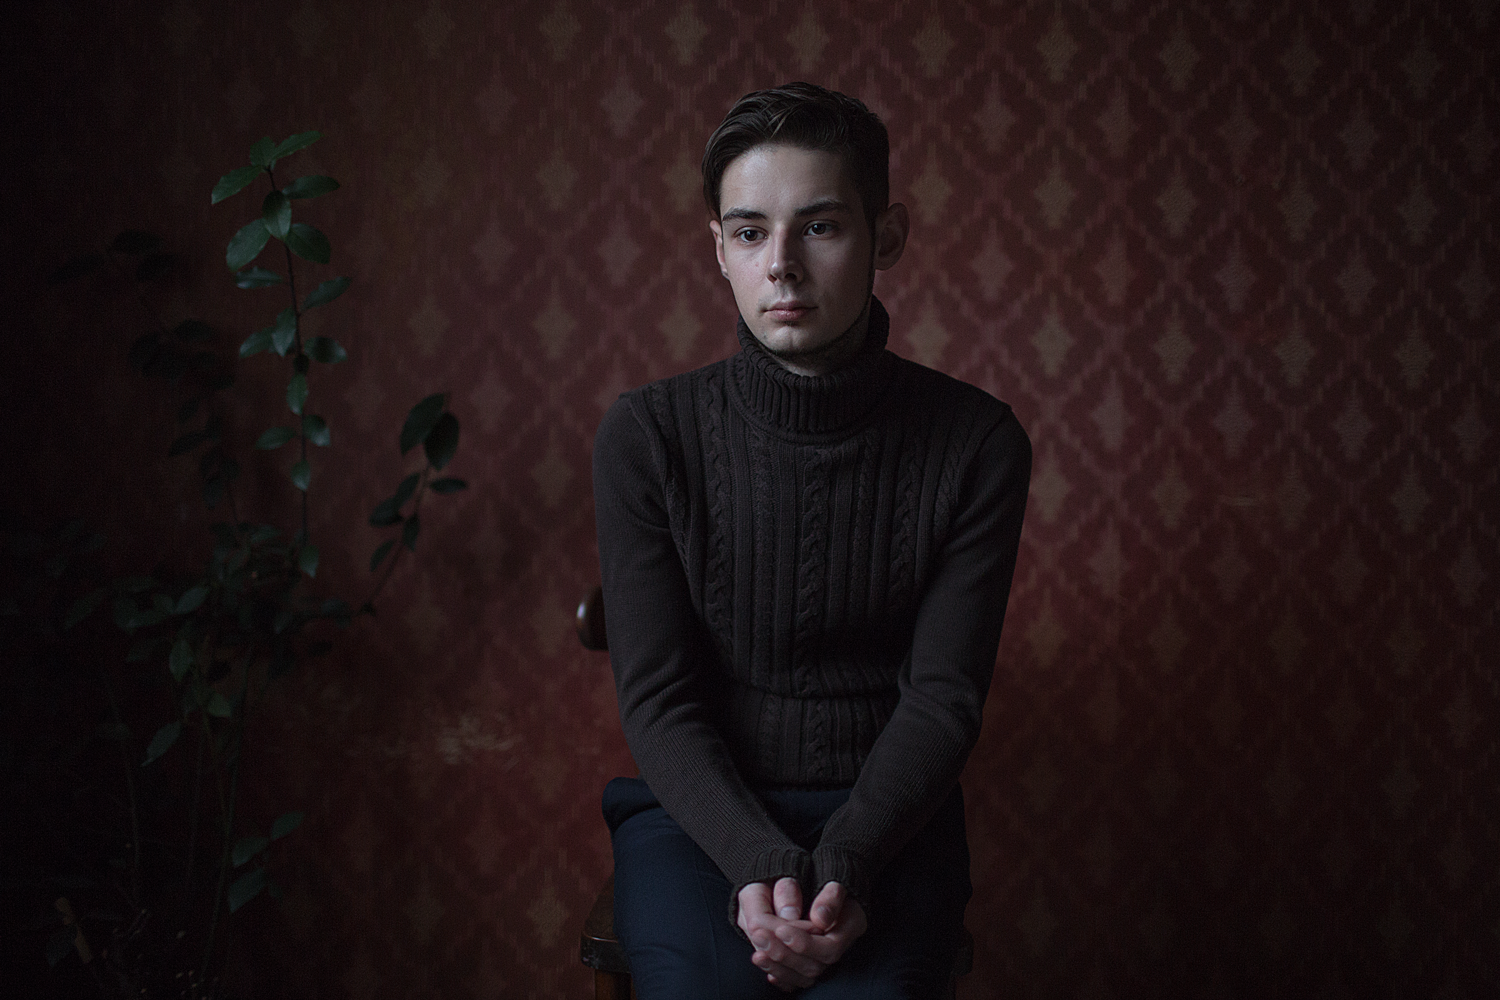 """Ivan, 24 years old, poses for a portrait at his apartment in St. Petersburg, Russia.  Ivan says: """"The meaning of life is to live your own life. Not someone else's, not illusory, but full. To breathe with two lungs instead of one and say """"I don't need my second lung."""""""